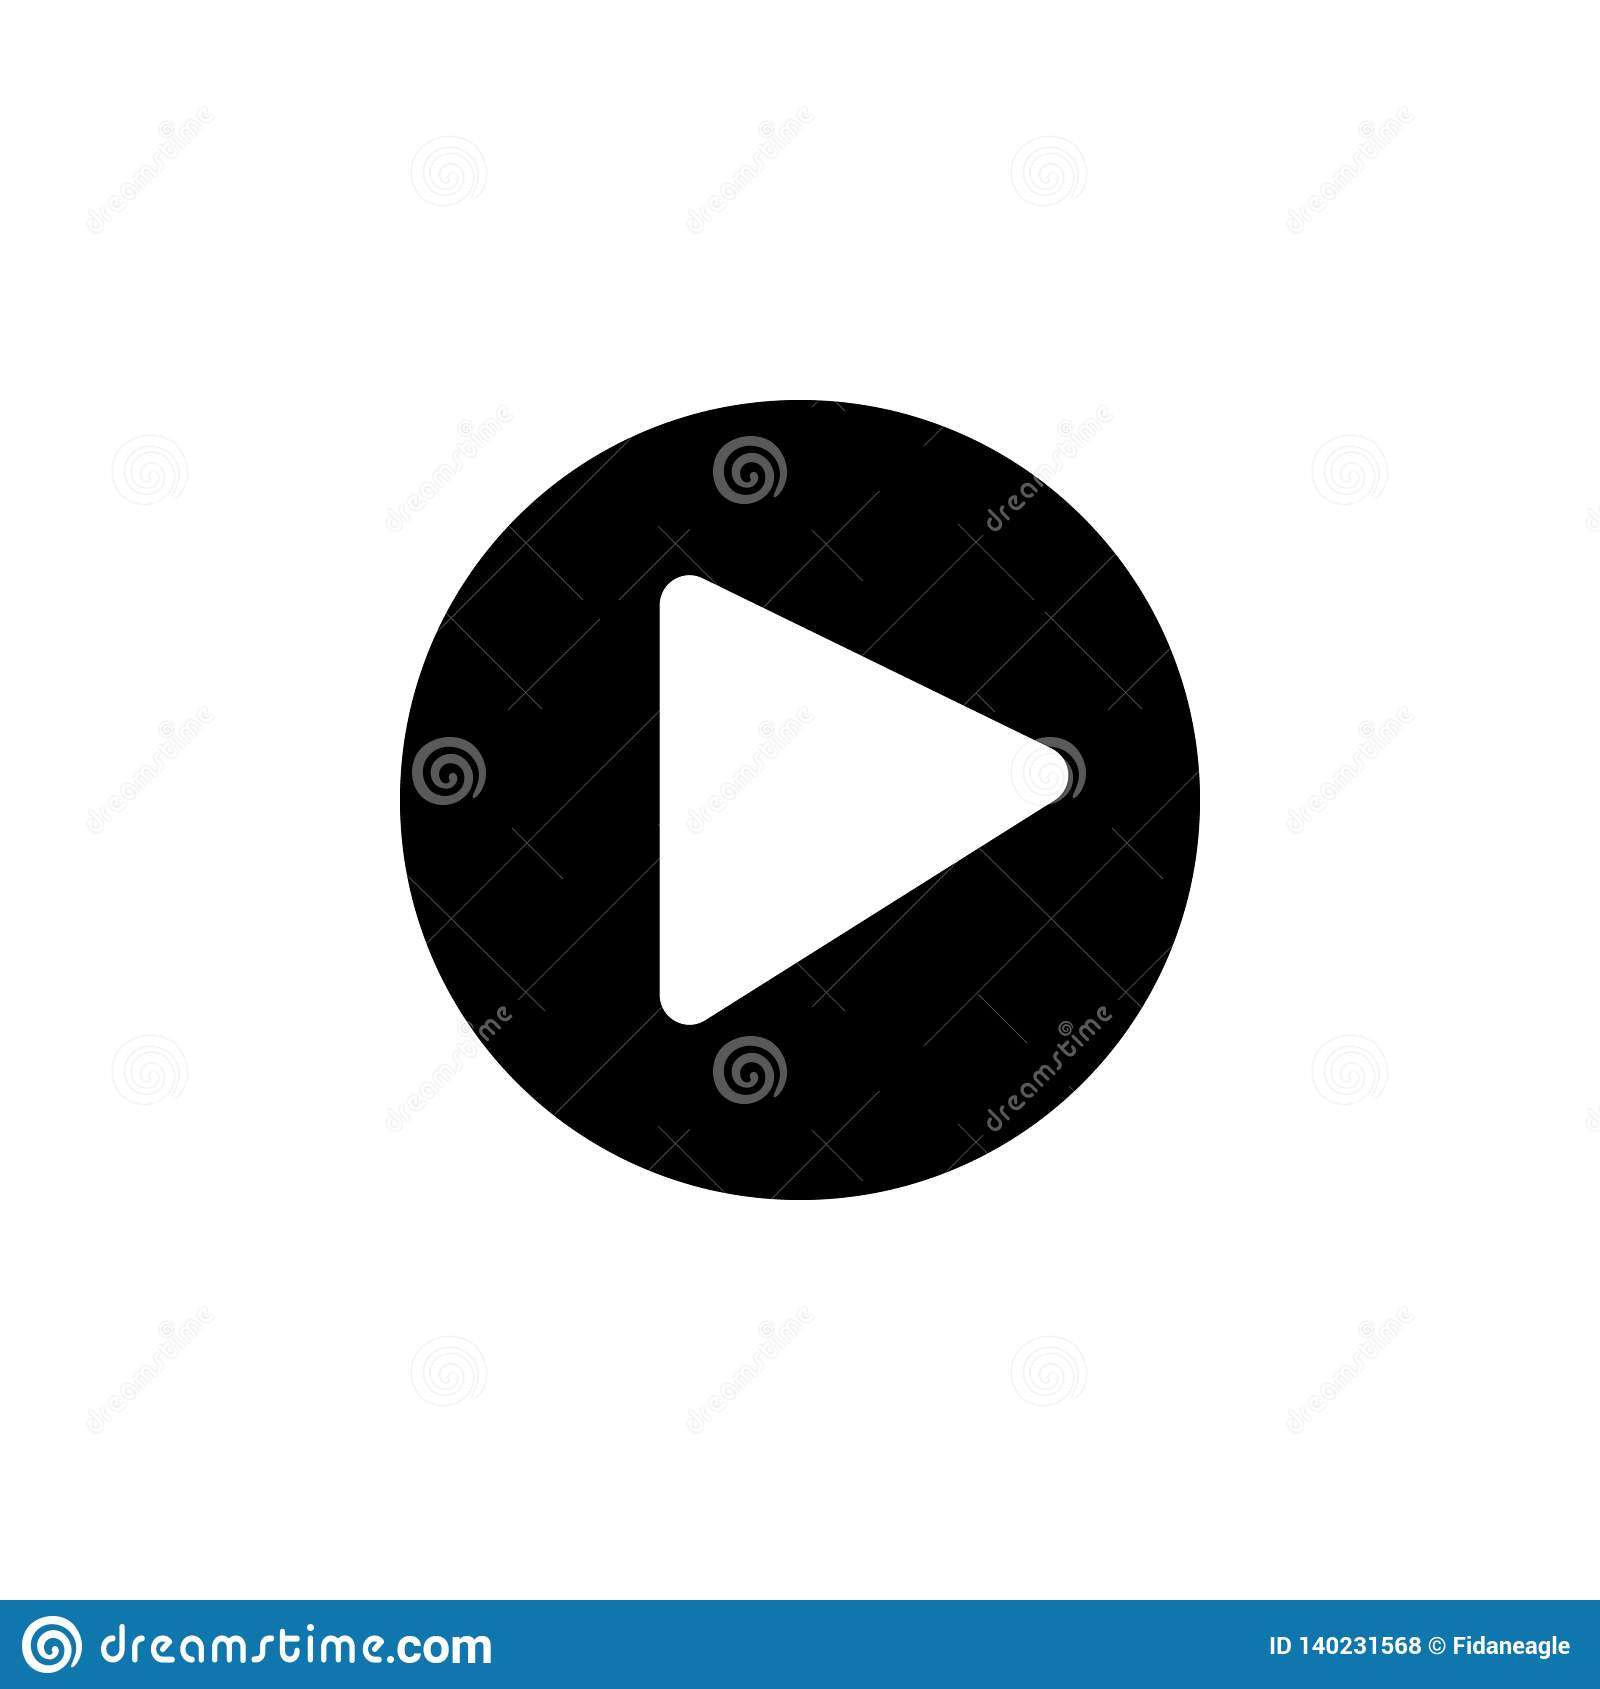 Media player icon. Signs and symbols can be used for web, logo, mobile app, UI, UX